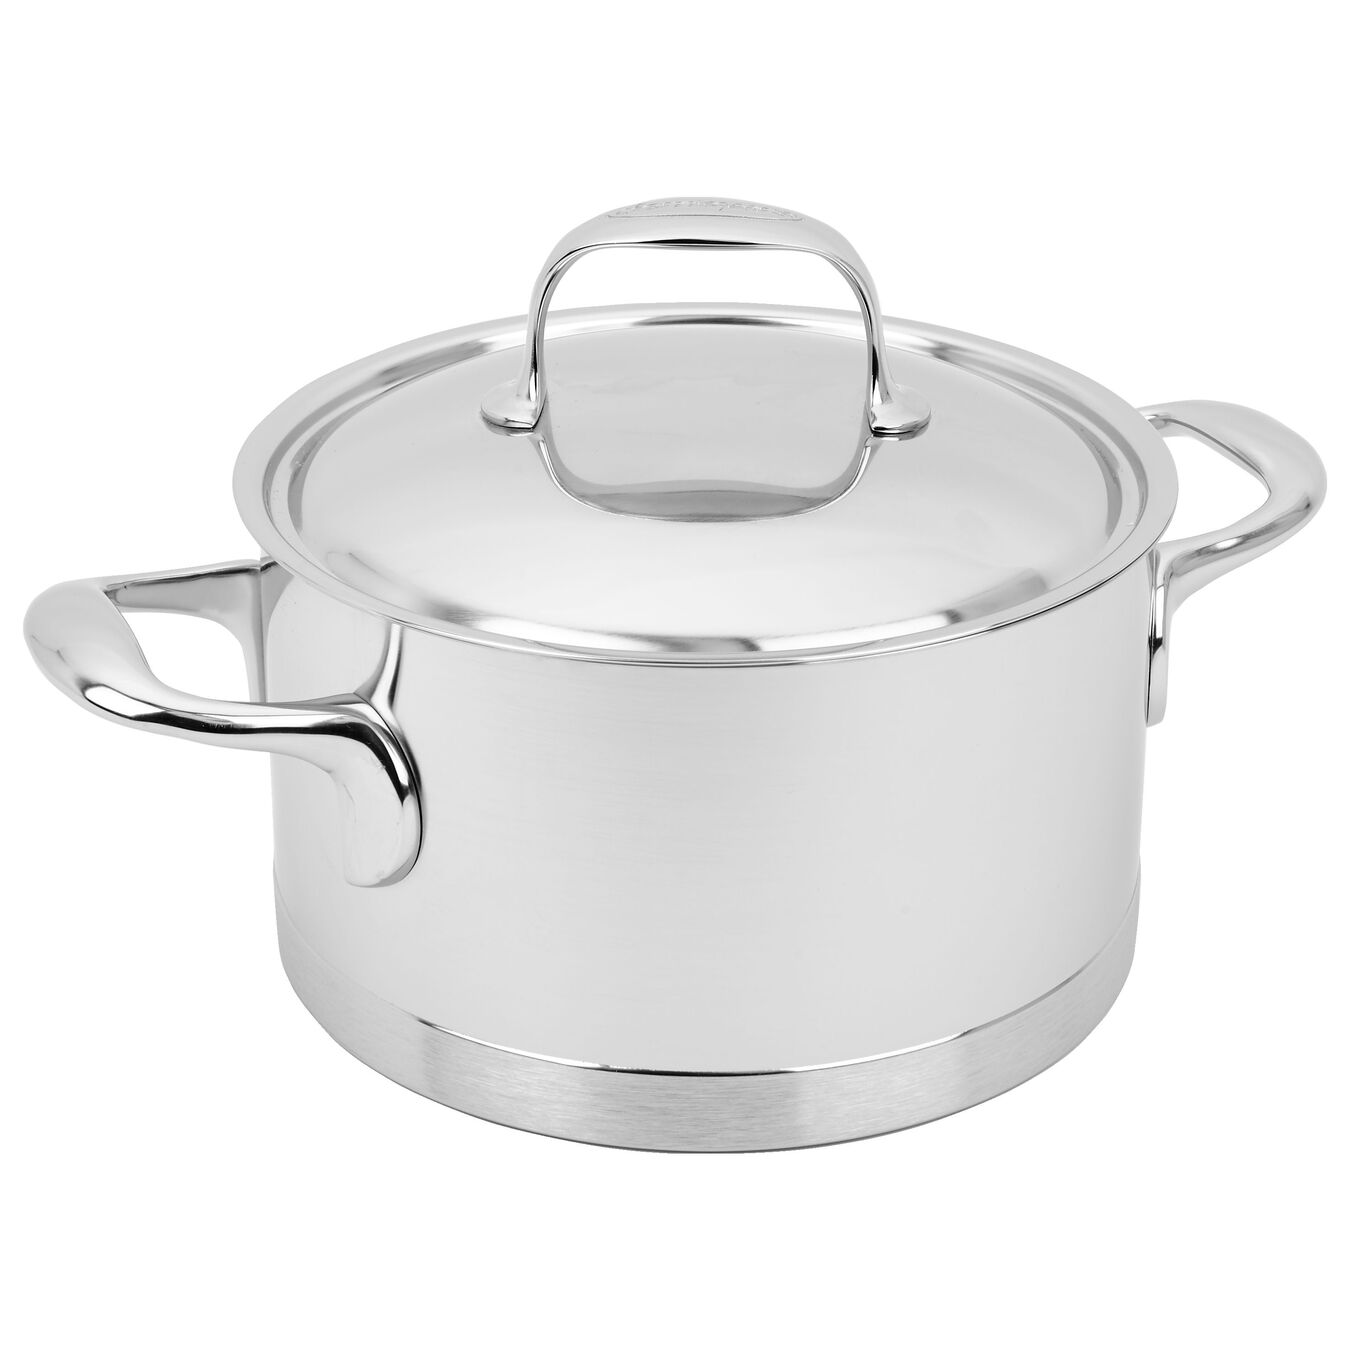 3 l 18/10 Stainless Steel Faitout with lid,,large 2